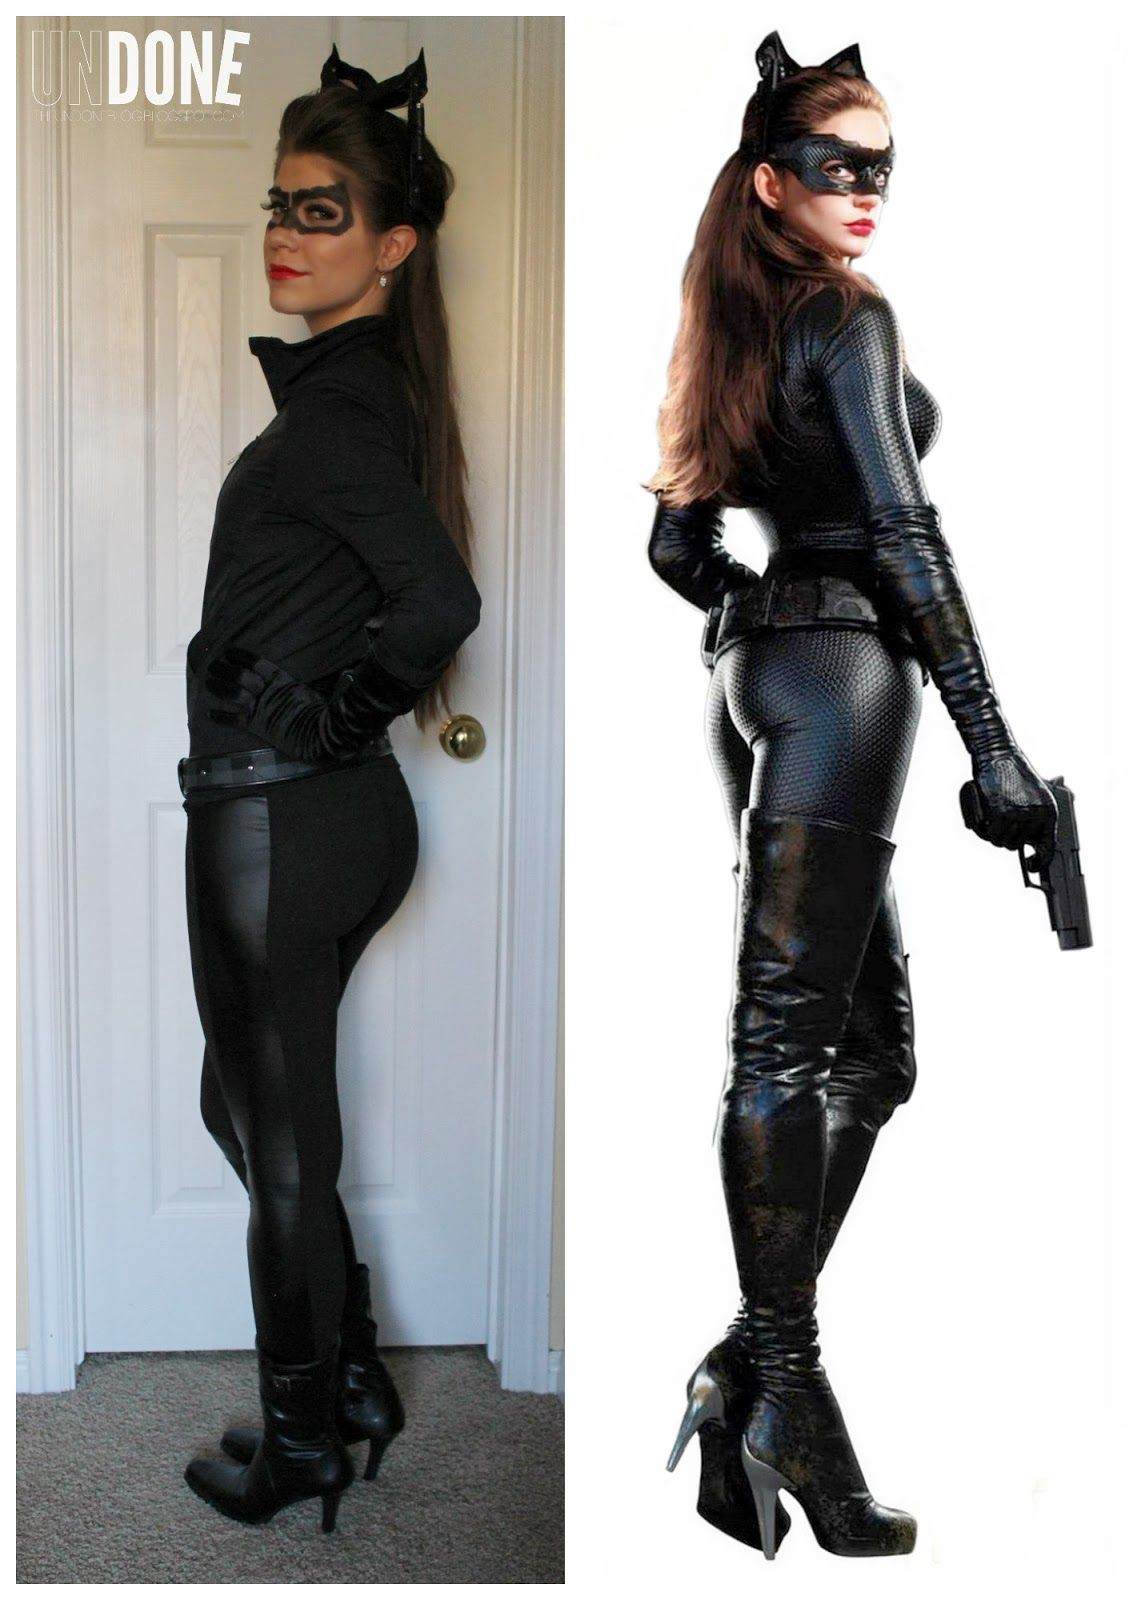 Undone: DIY Catwoman Costume {Daily Diaries} | Catwoman ...